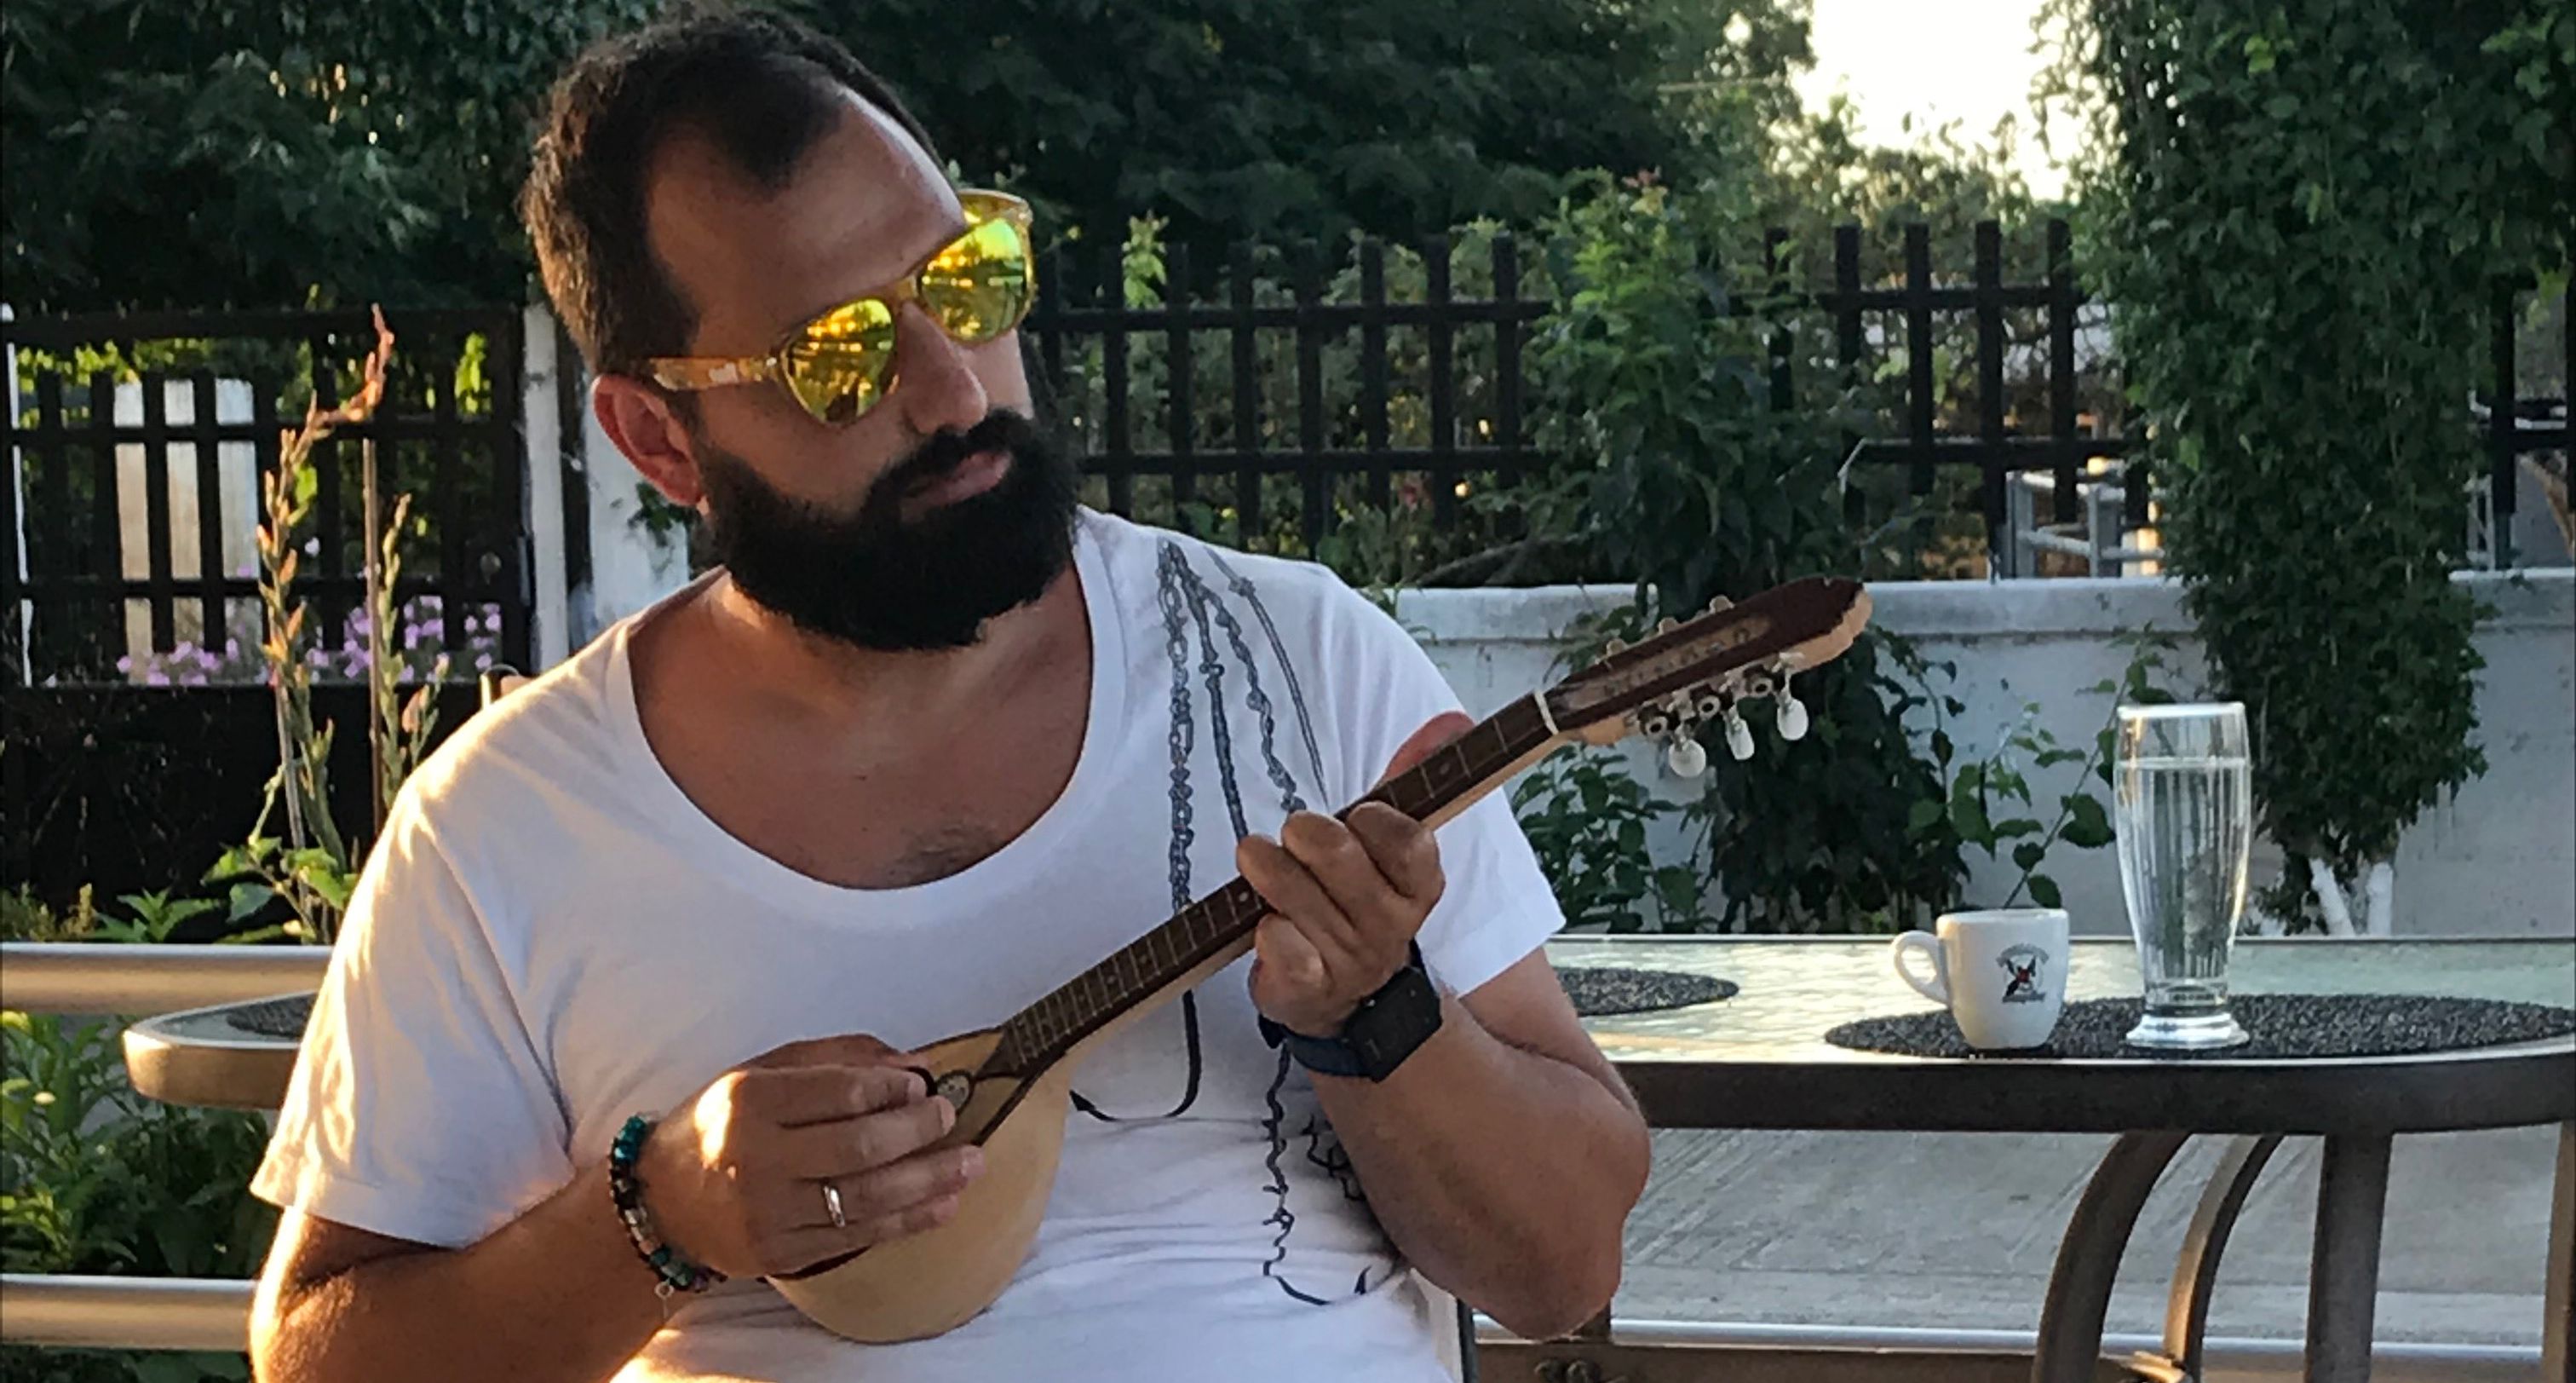 Michel playing baglama